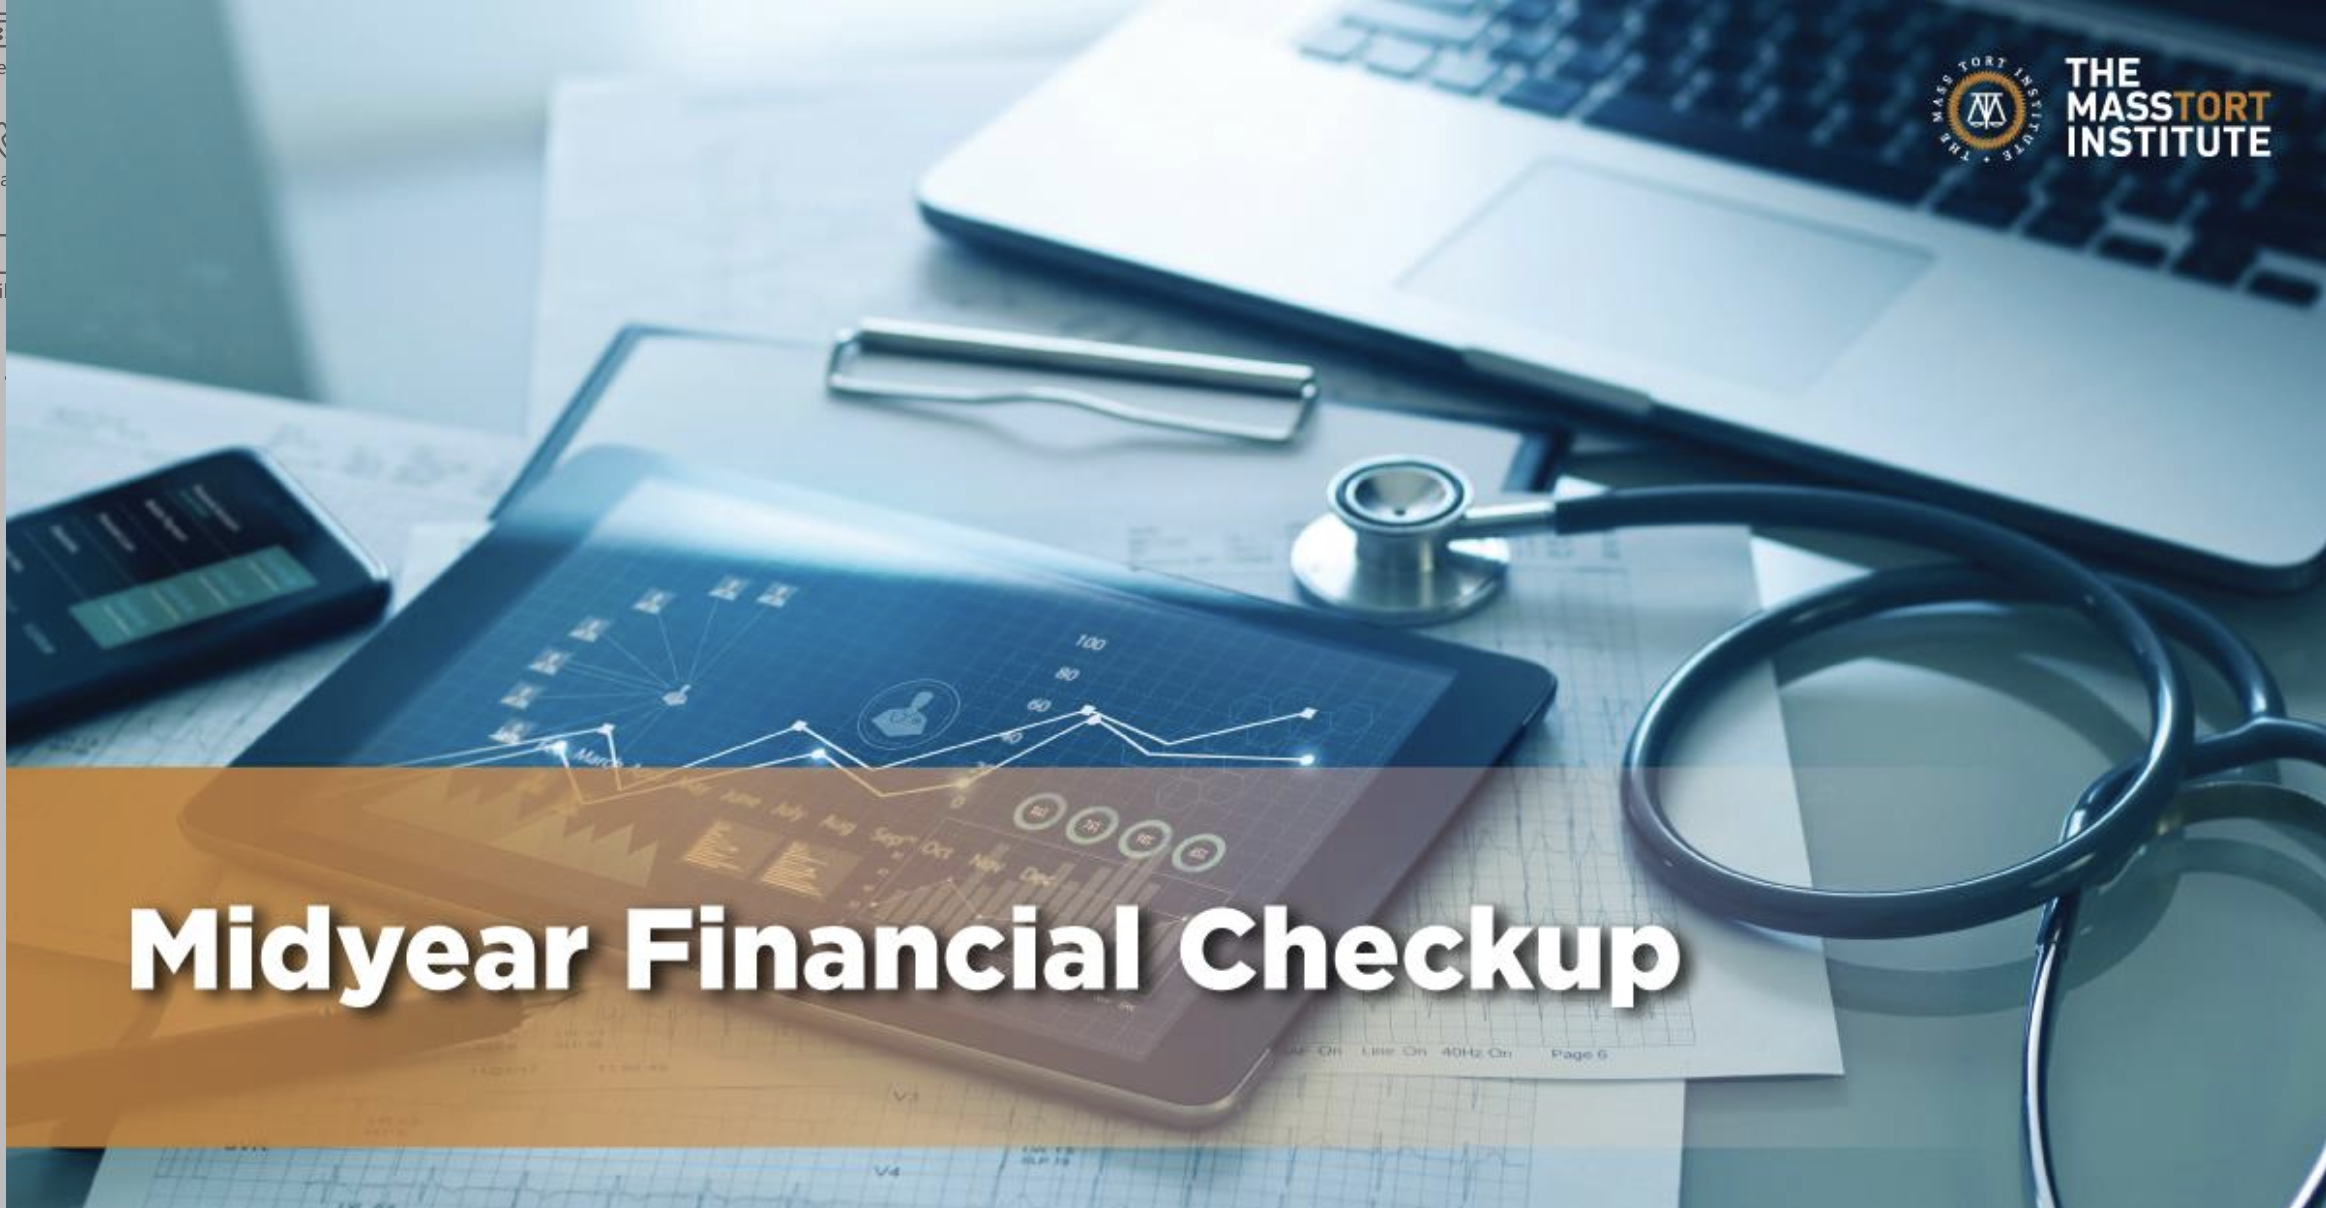 midyear financial checkup, mid year financial check up, law firm, finances, business